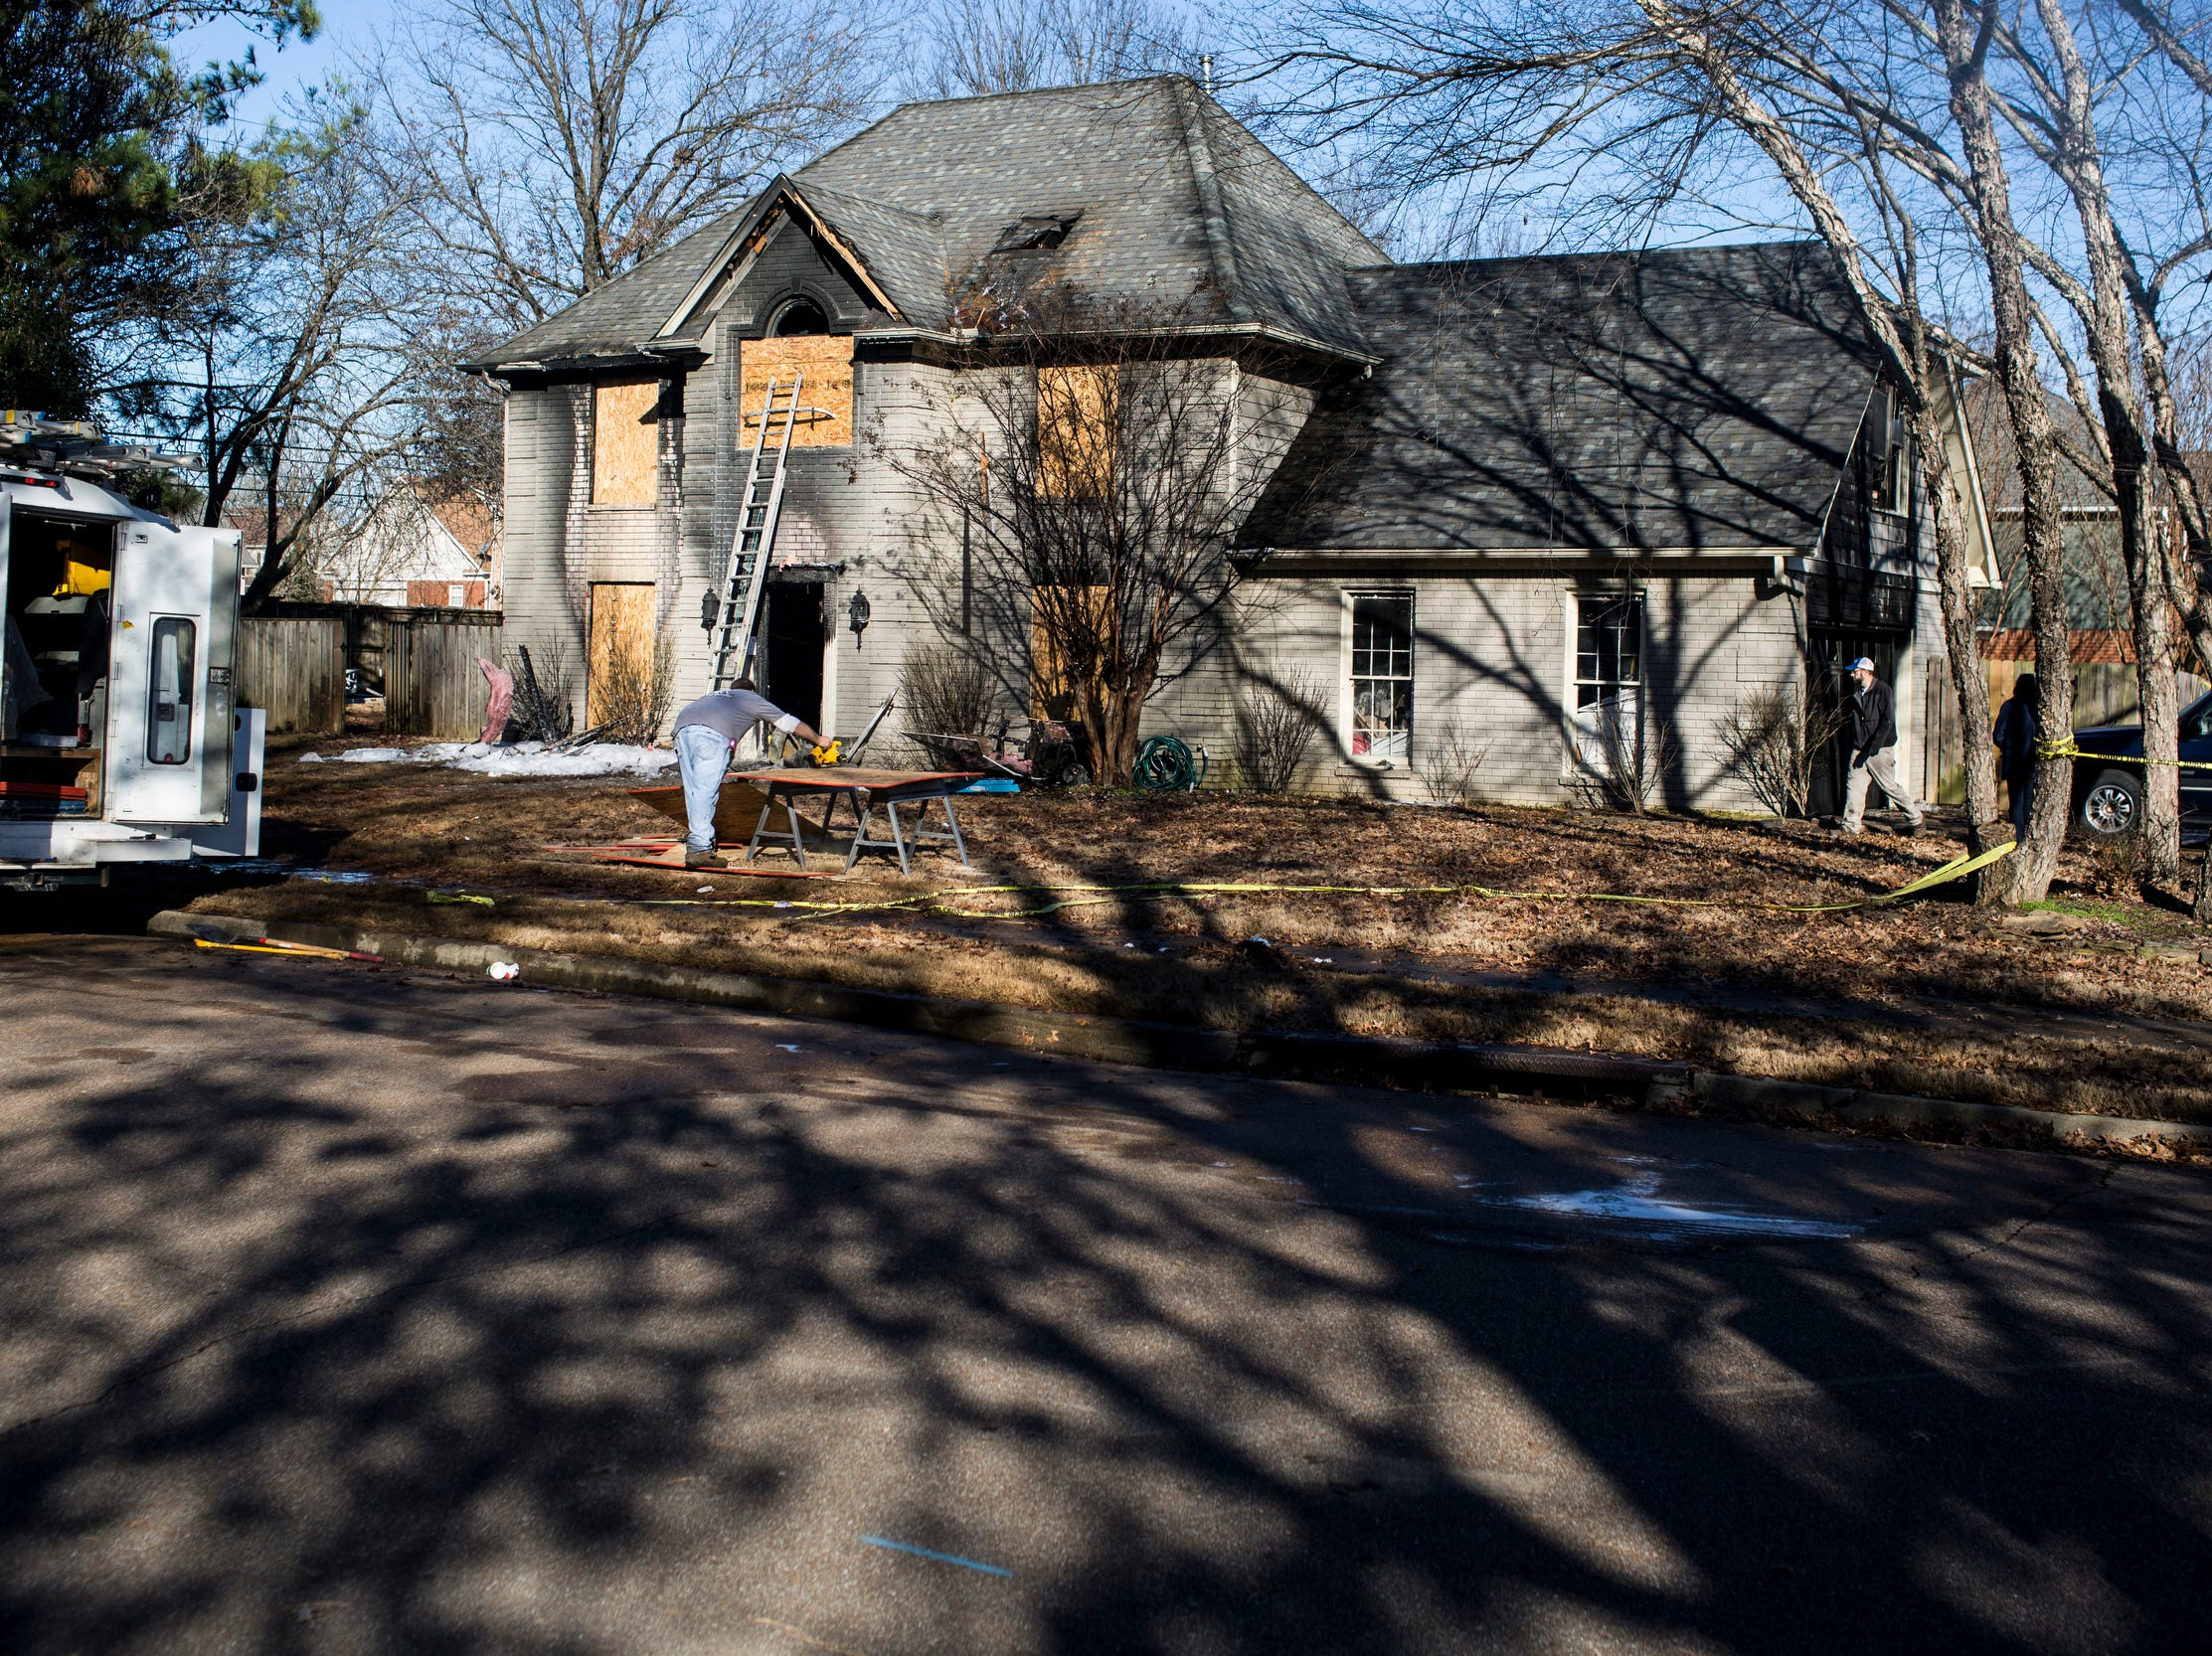 December 24 2018 - People work to board up the home on Autumn Winds Drive in Collierville after a overnight fire on Christmas Eve killed four people and injured four others.